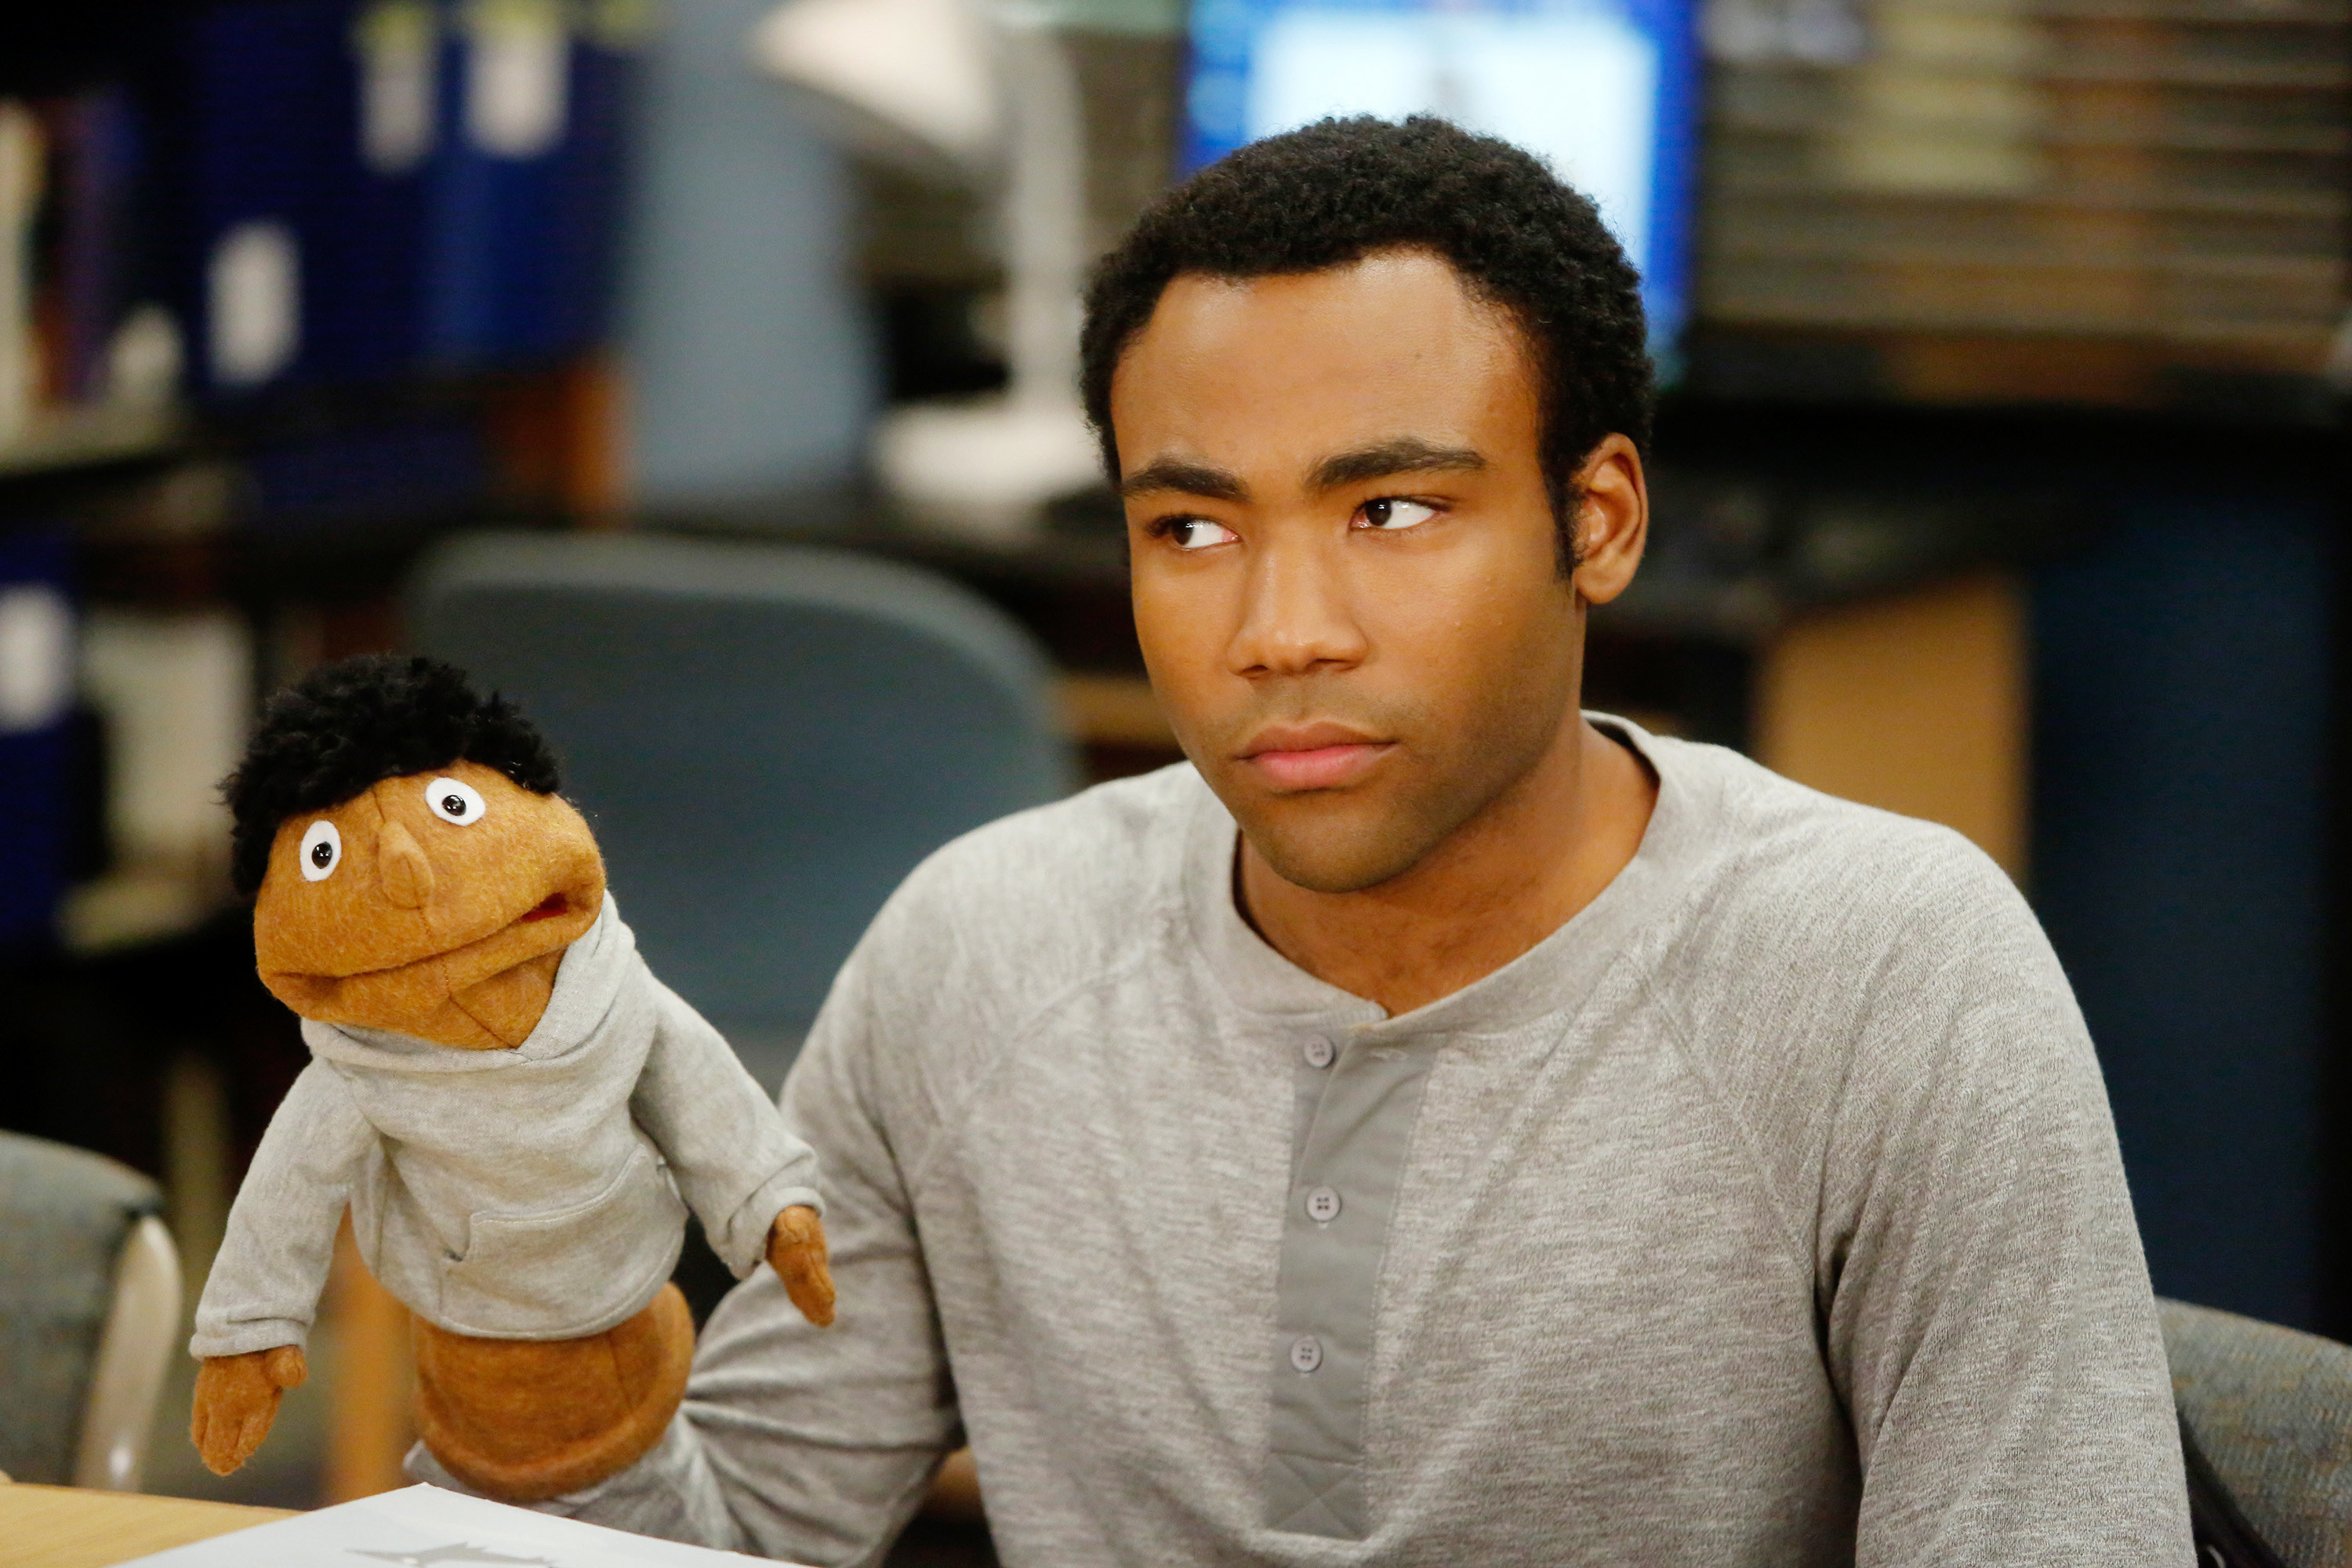 Troy with his puppet